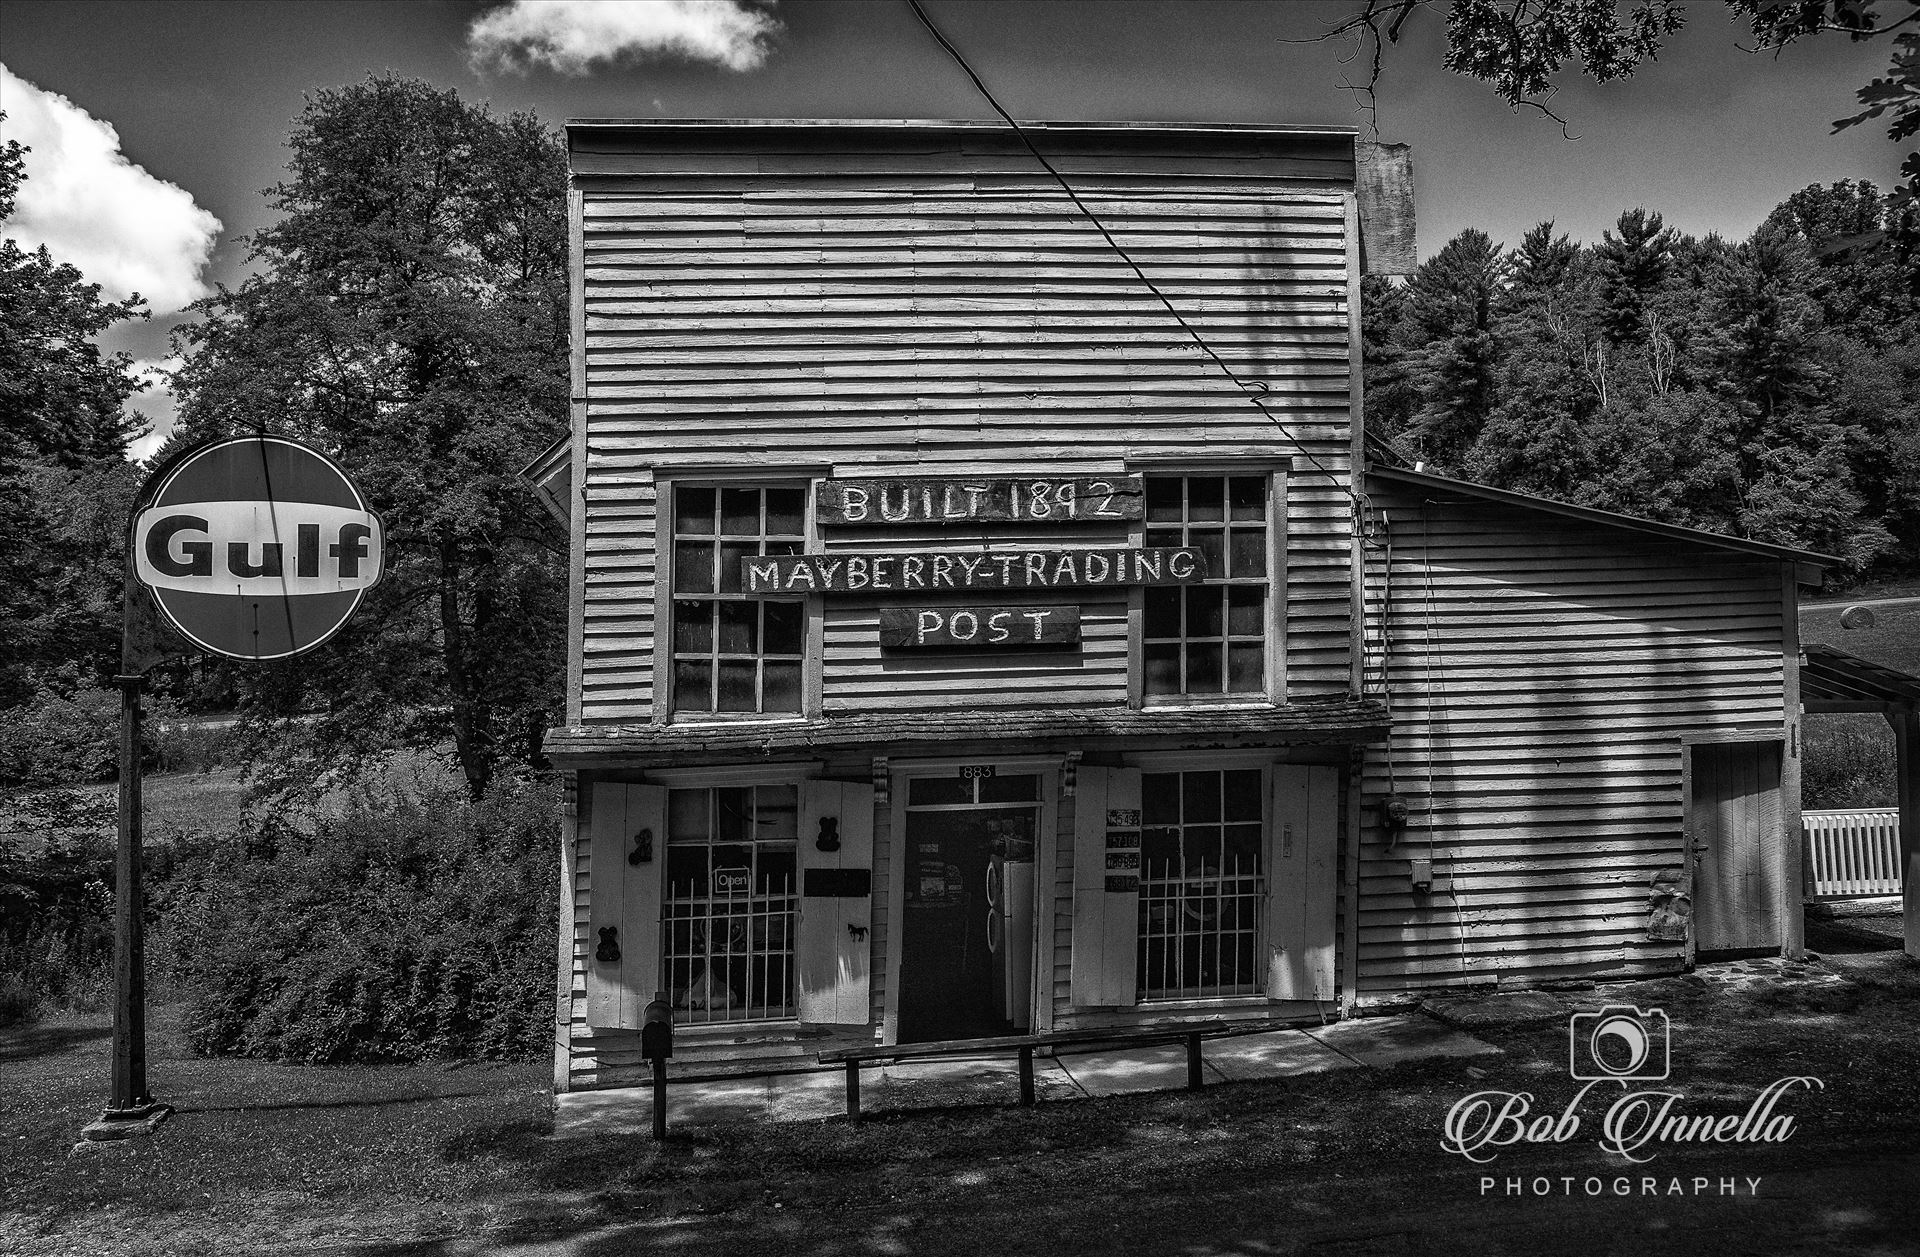 Mayberry General Store - Meadows Of Dan, Virginia by Buckmaster